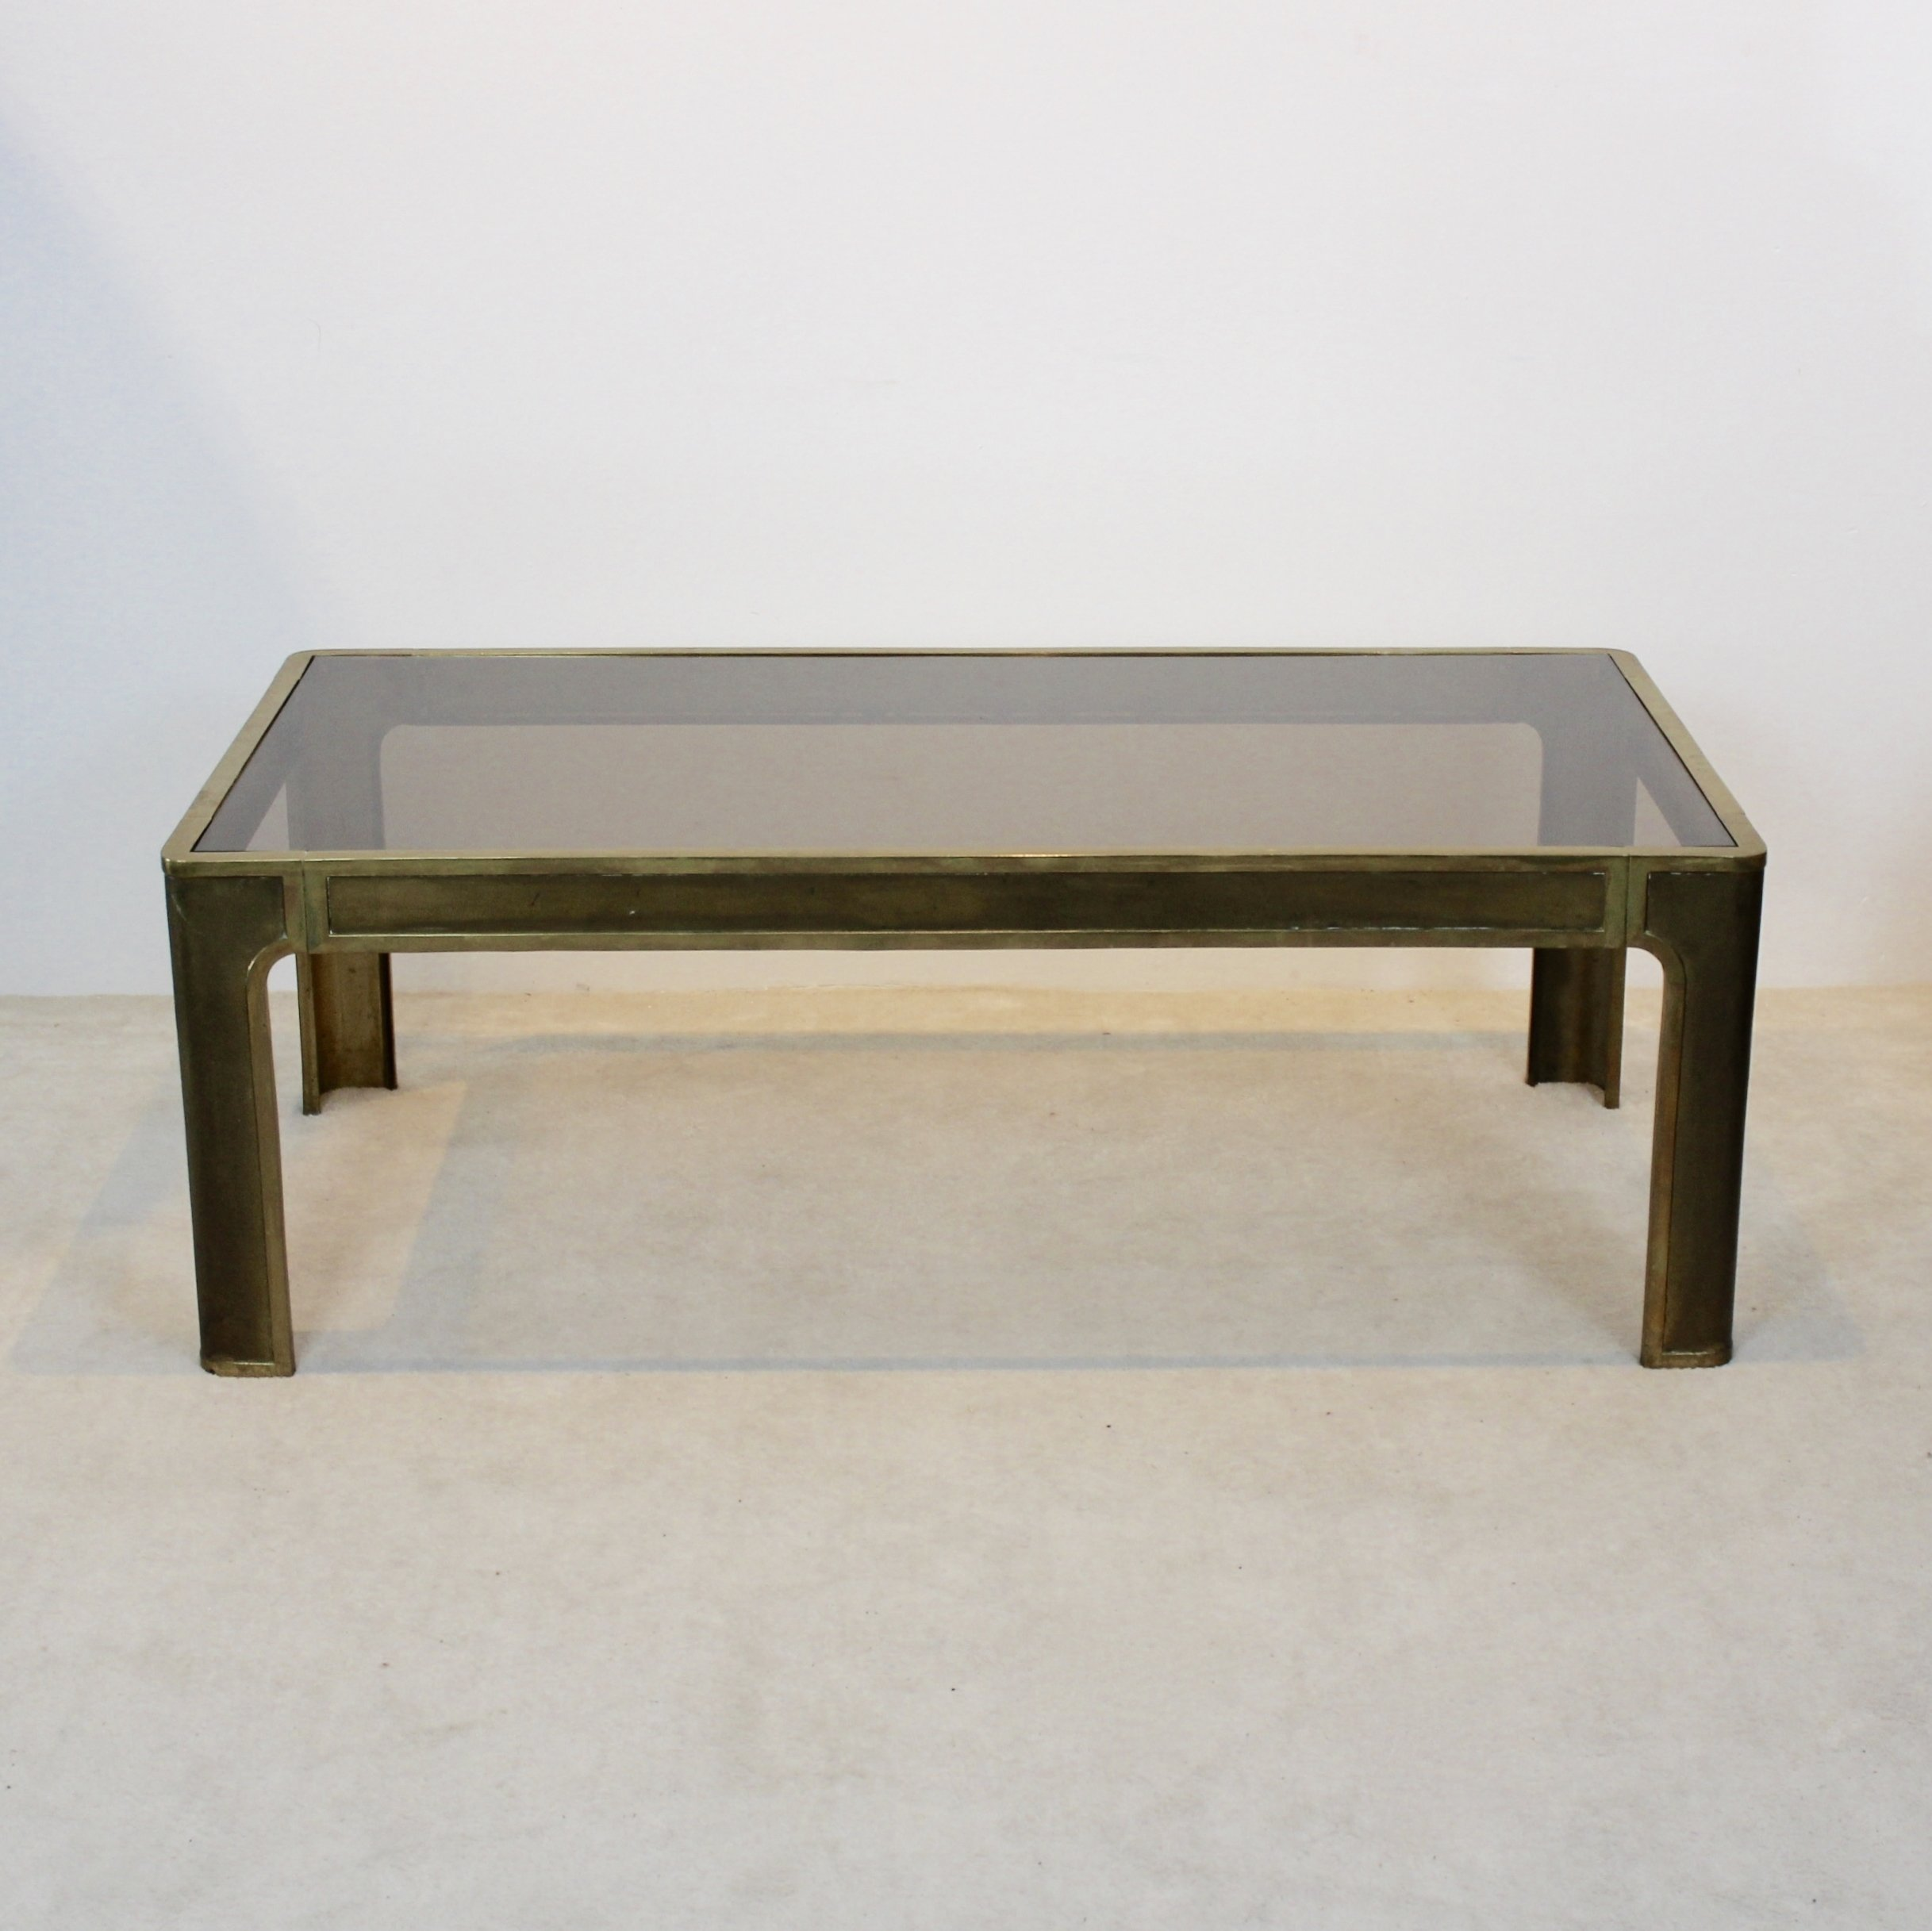 - Peter Ghyczy Brass & Glass Coffee Table, 1970s #68857